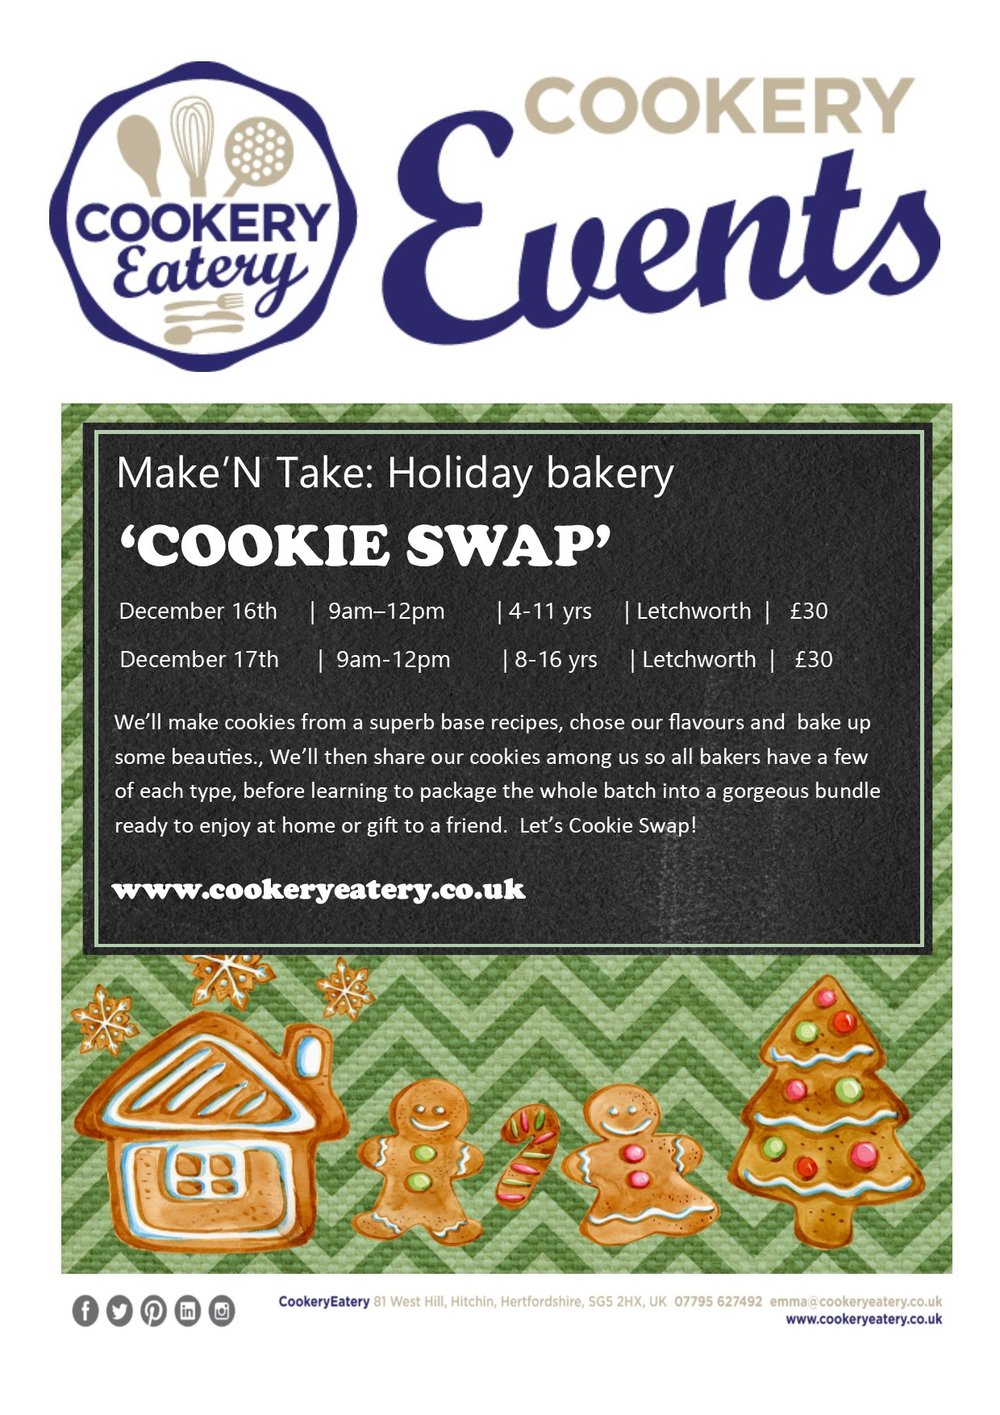 CookeryEatery.MAKE N TAKE. Cookie Swap.Dec17.jpg